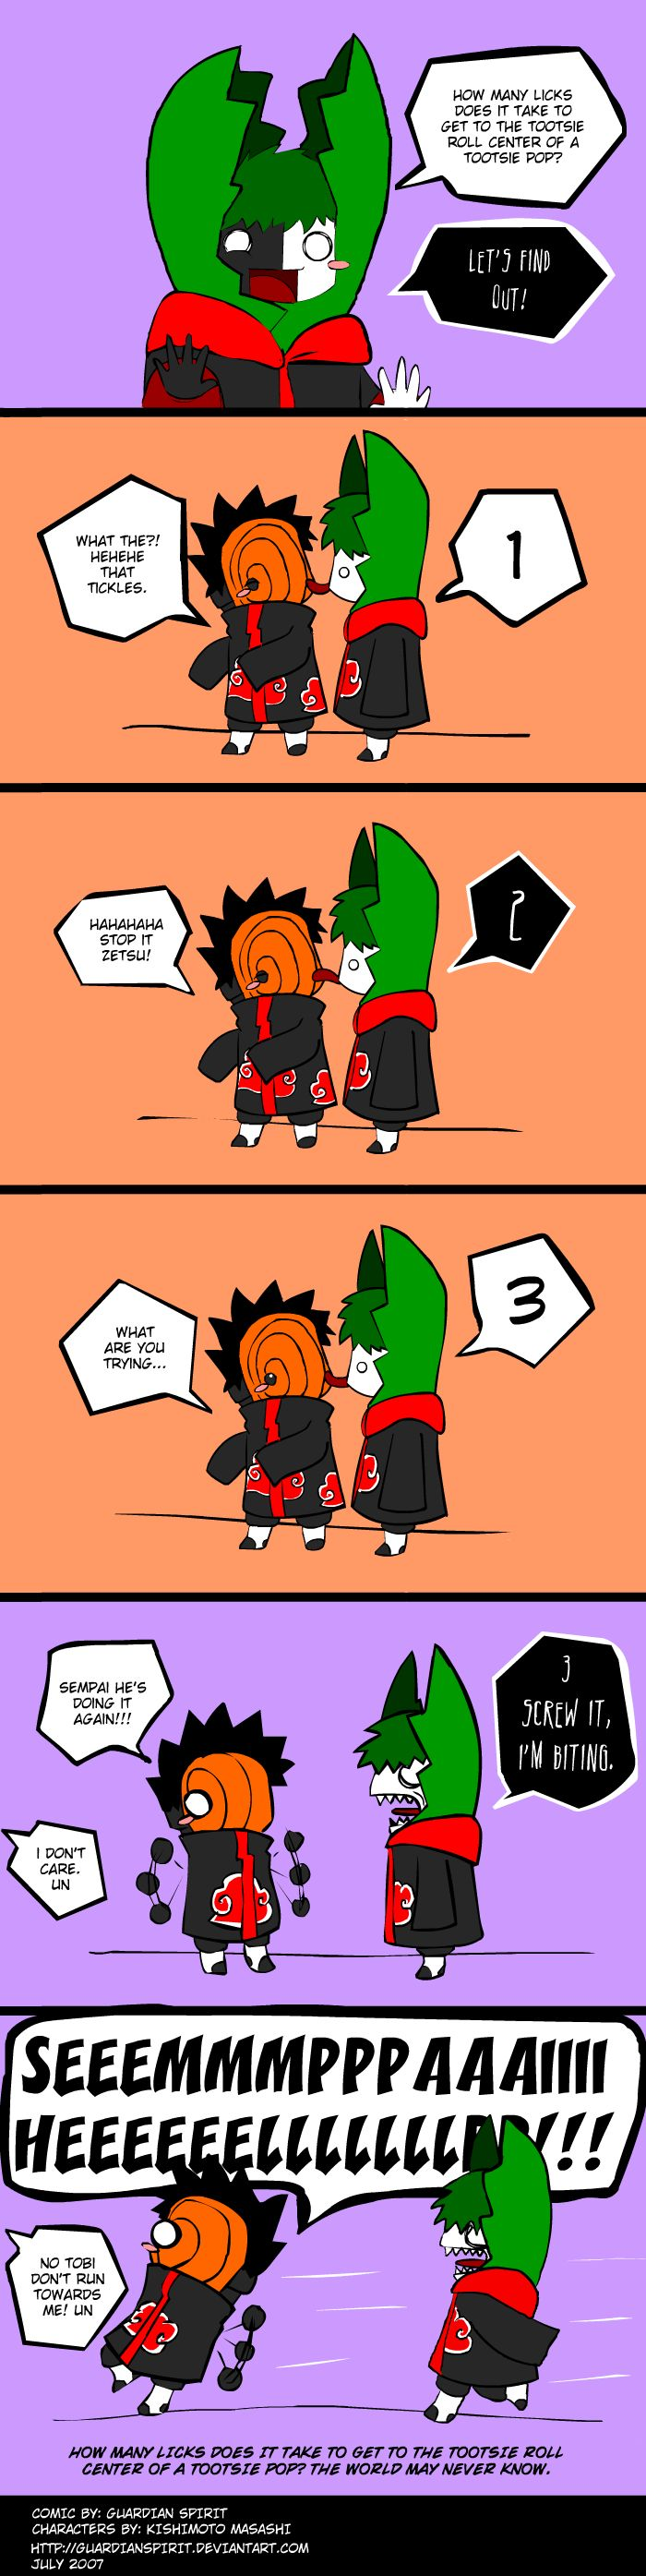 """Naruto Shippuden » Humor » Comic   """"How many licks does it take to get to the tootsie roll center of a tootsie pop? Let's find out!""""   #tobi #zetsu #deidara"""